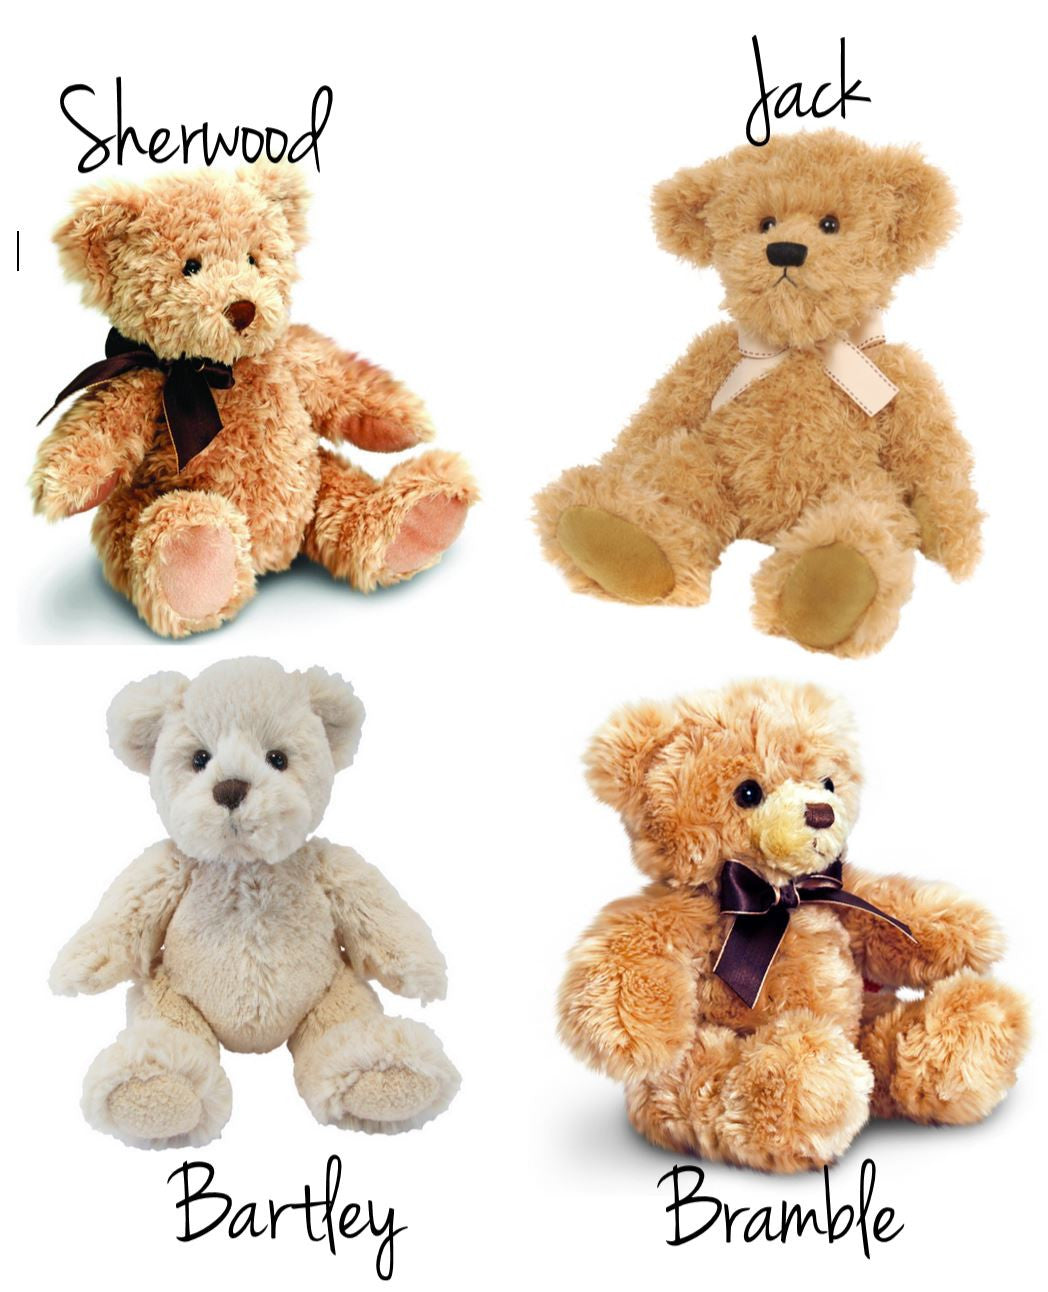 Teddy bear gifts arriving soon!